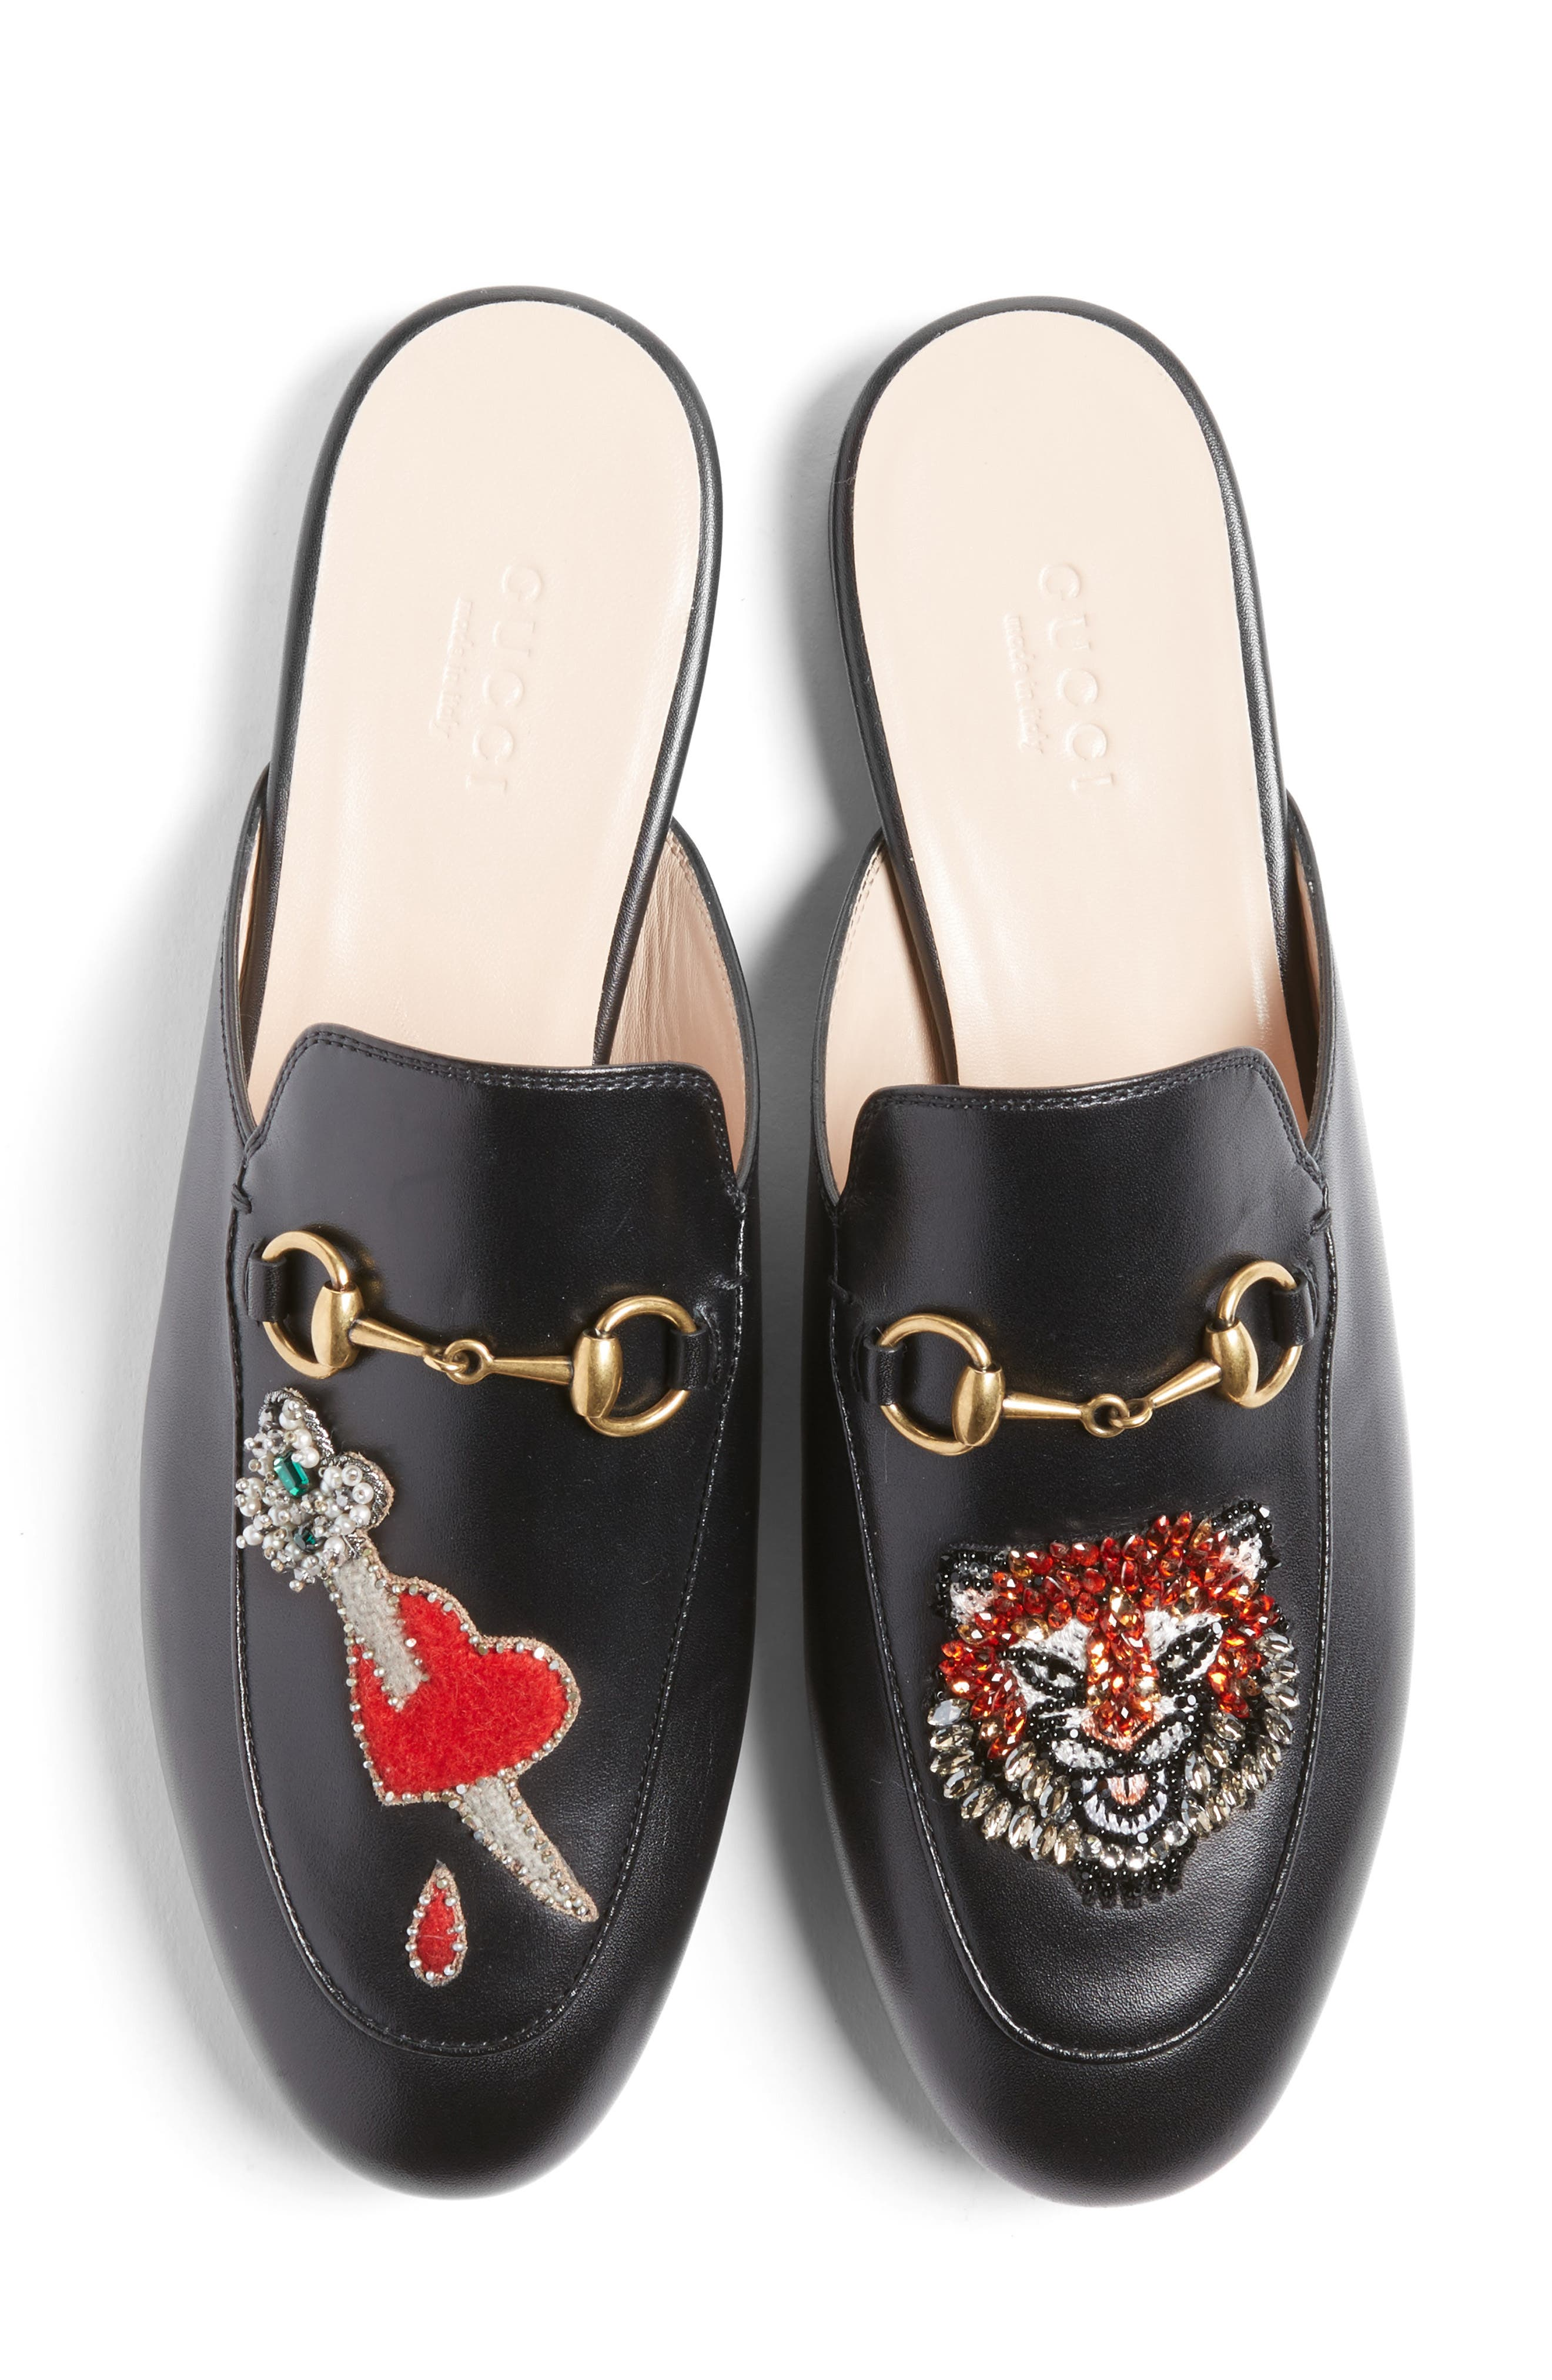 Alternate Image 1 Selected - Gucci Princetown Mule Loafer (Women)